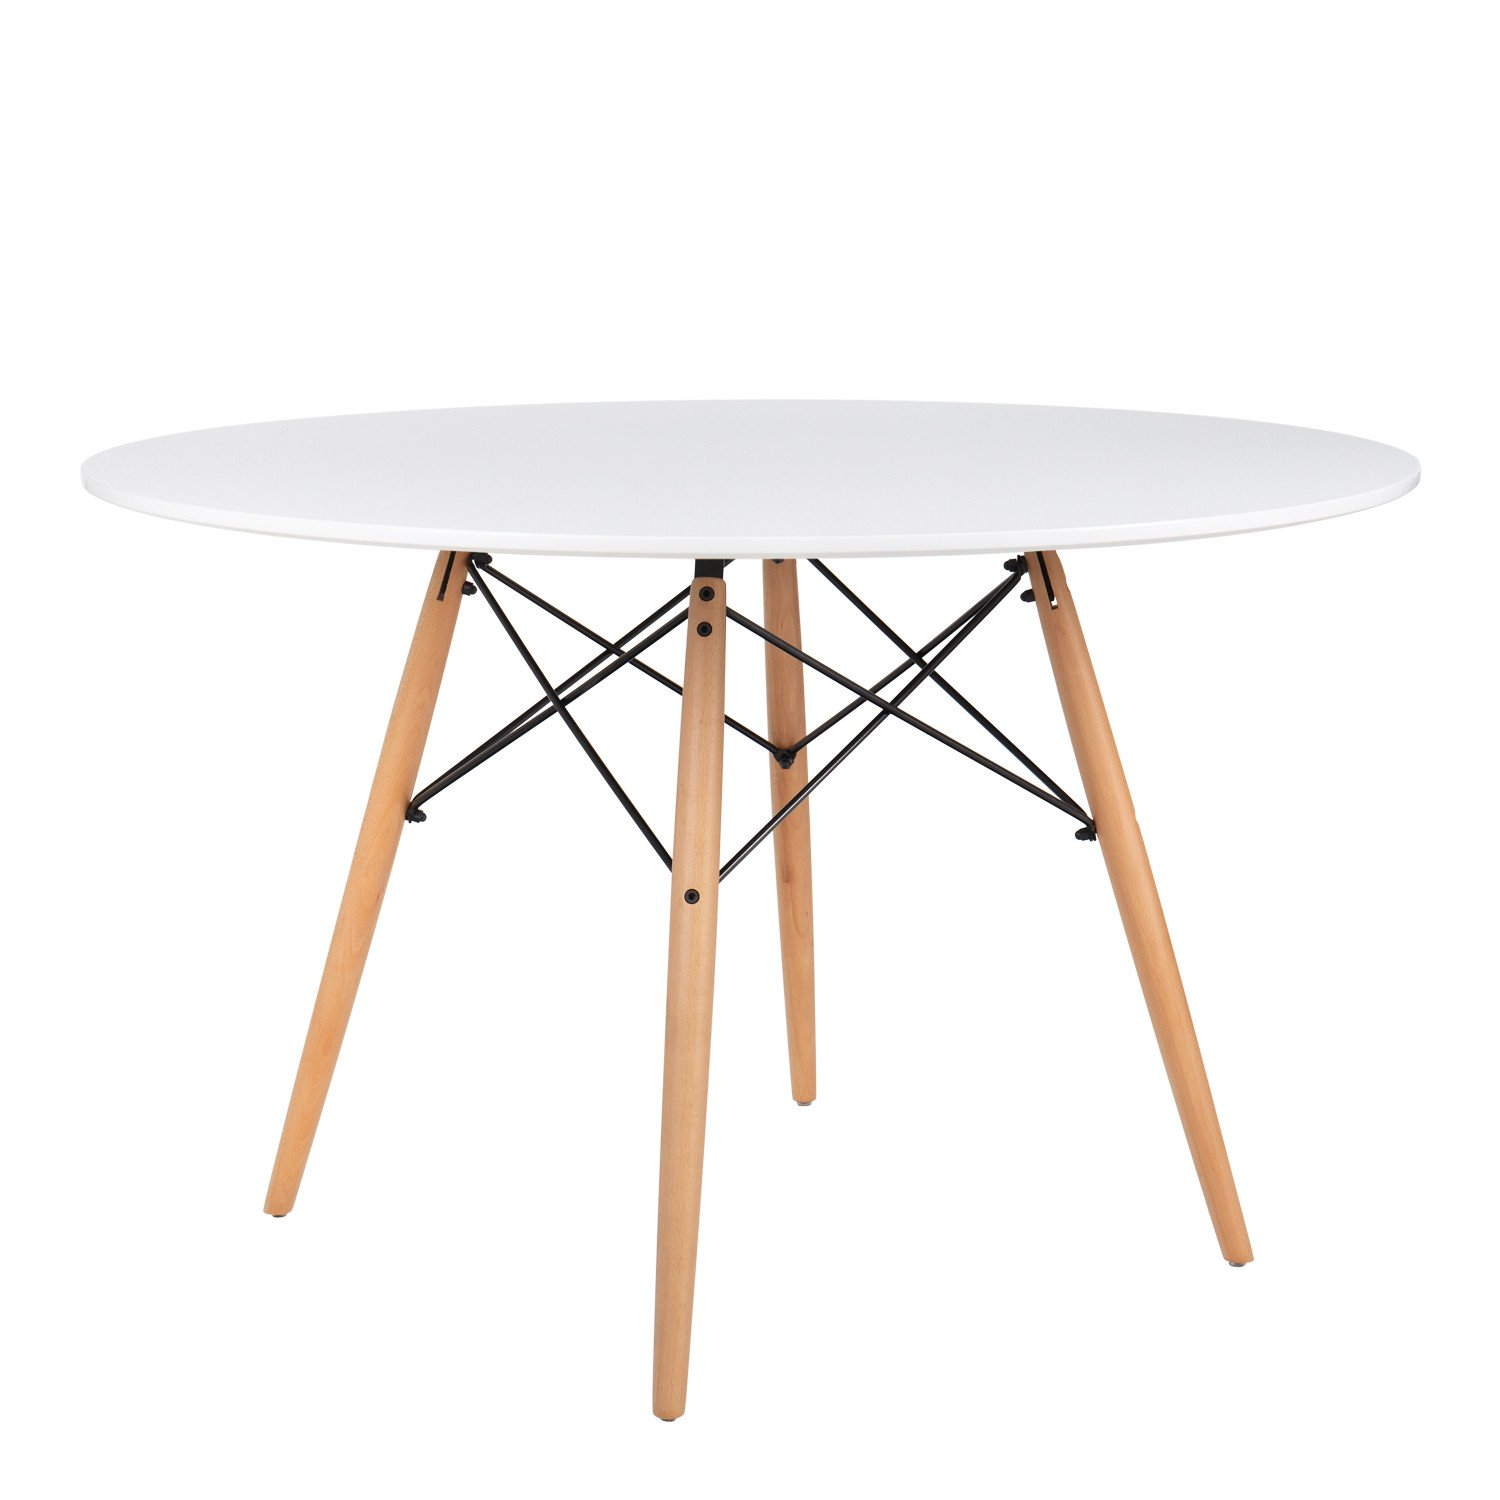 Charles Ray Eames Style 120cm White